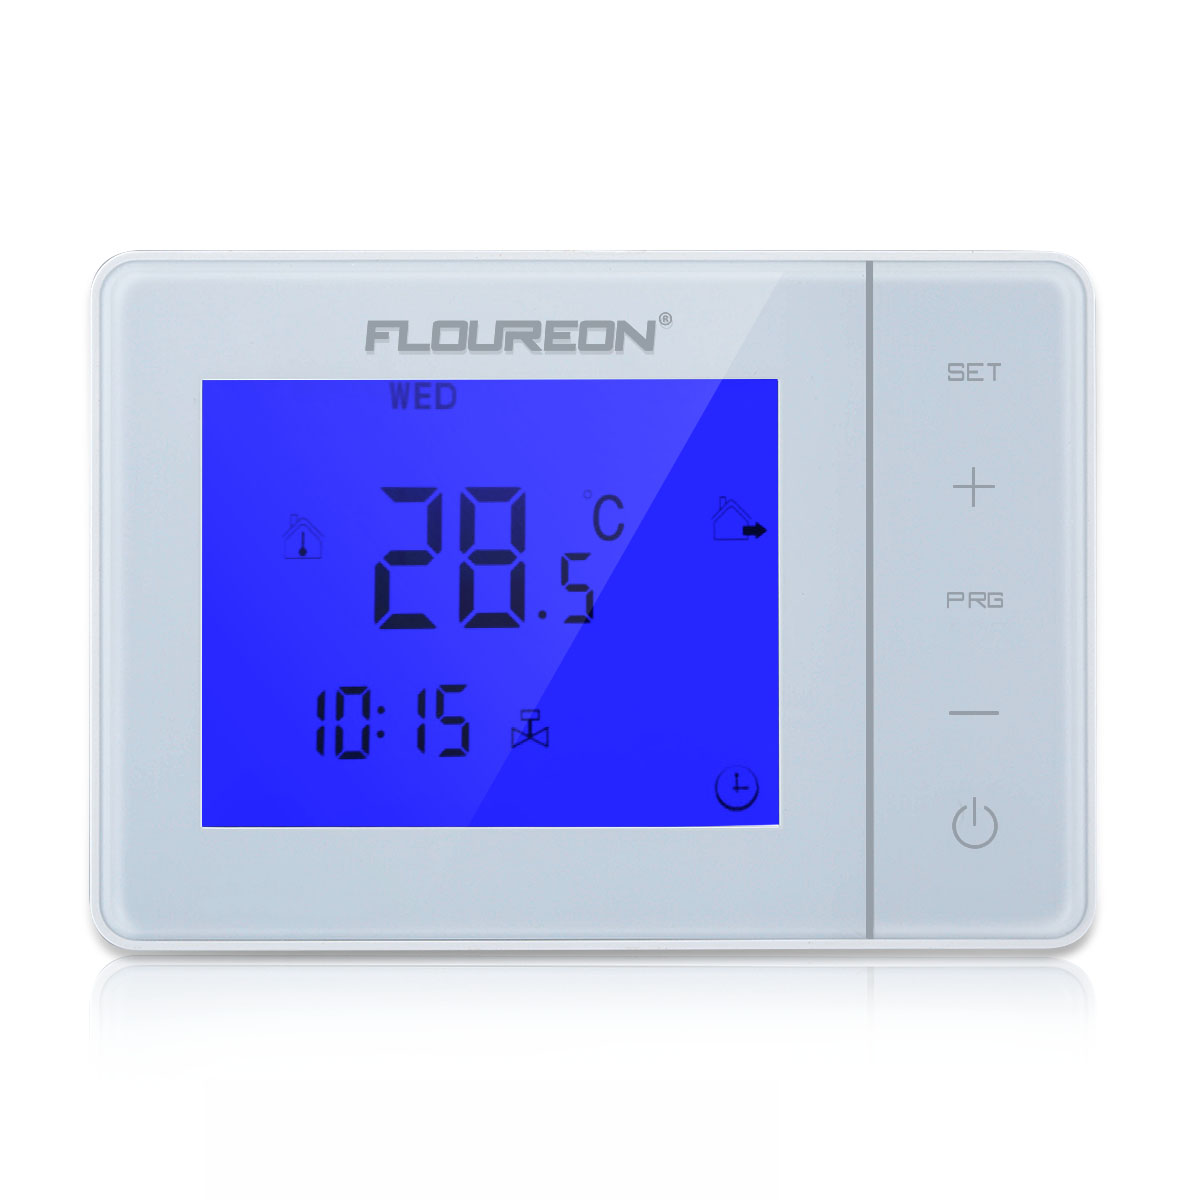 floureon fu bodenheizung raumthermostat digitale. Black Bedroom Furniture Sets. Home Design Ideas